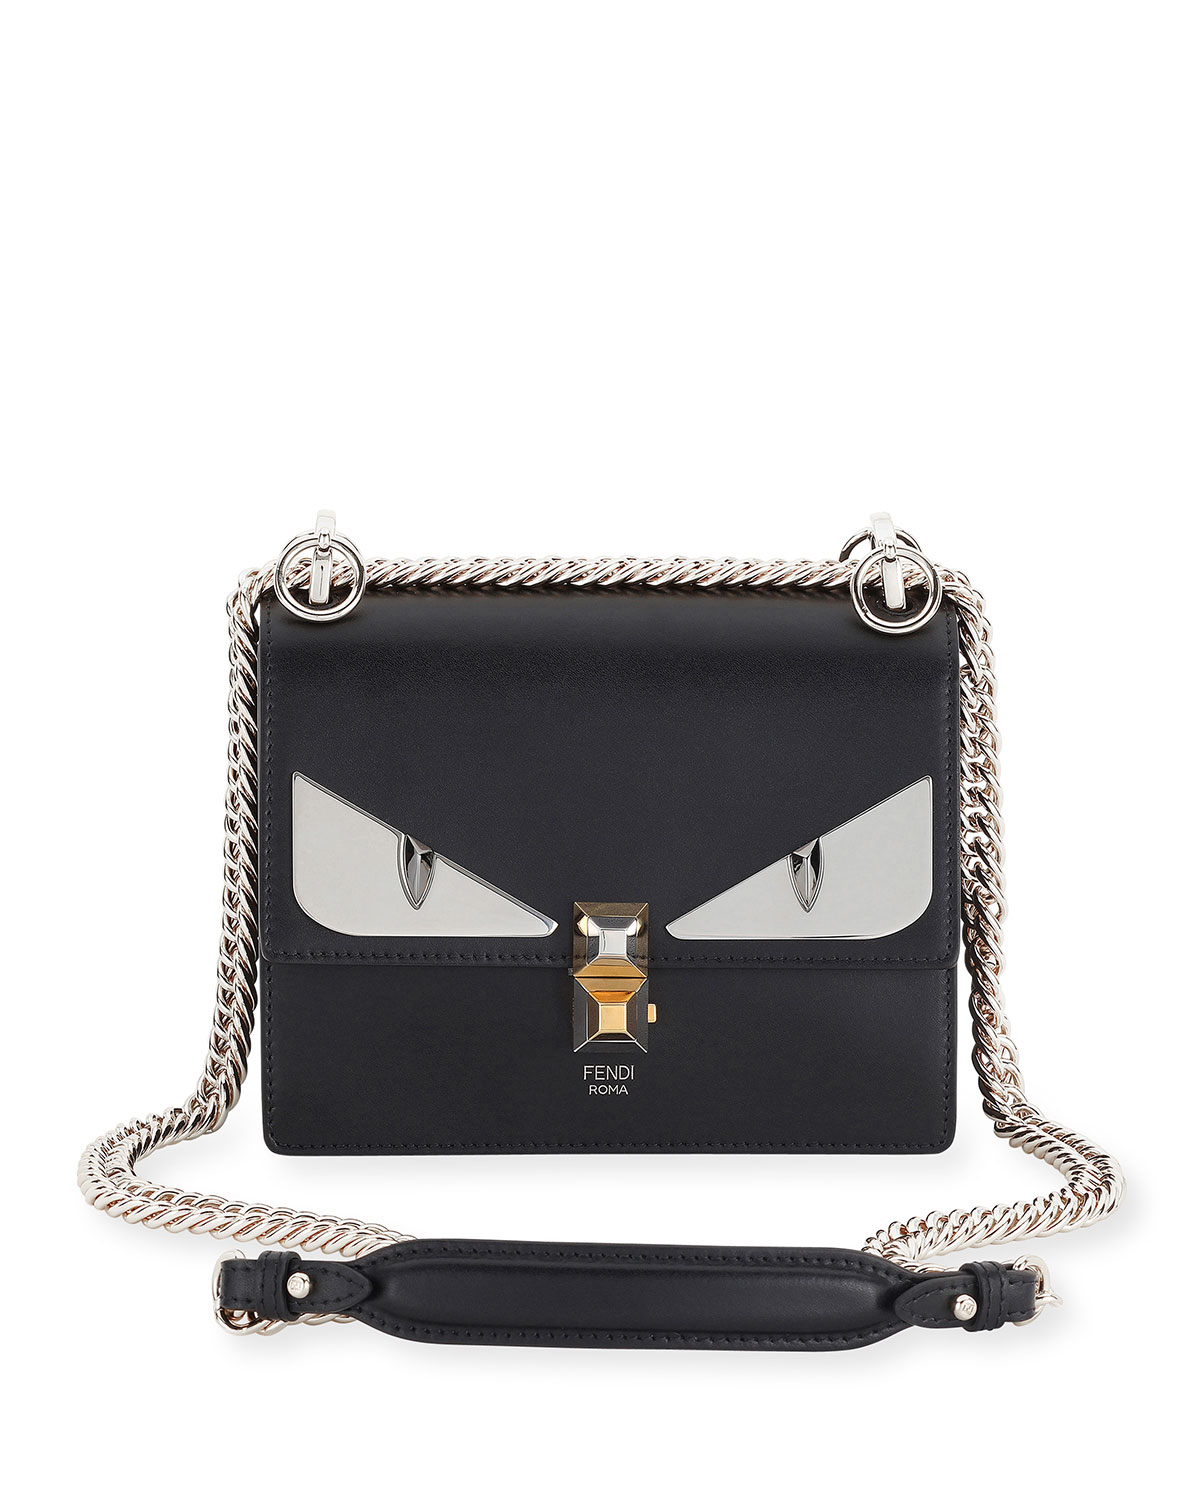 ff457f055a3a Fendi Kan I Monster Mini Leather Shoulder Bag